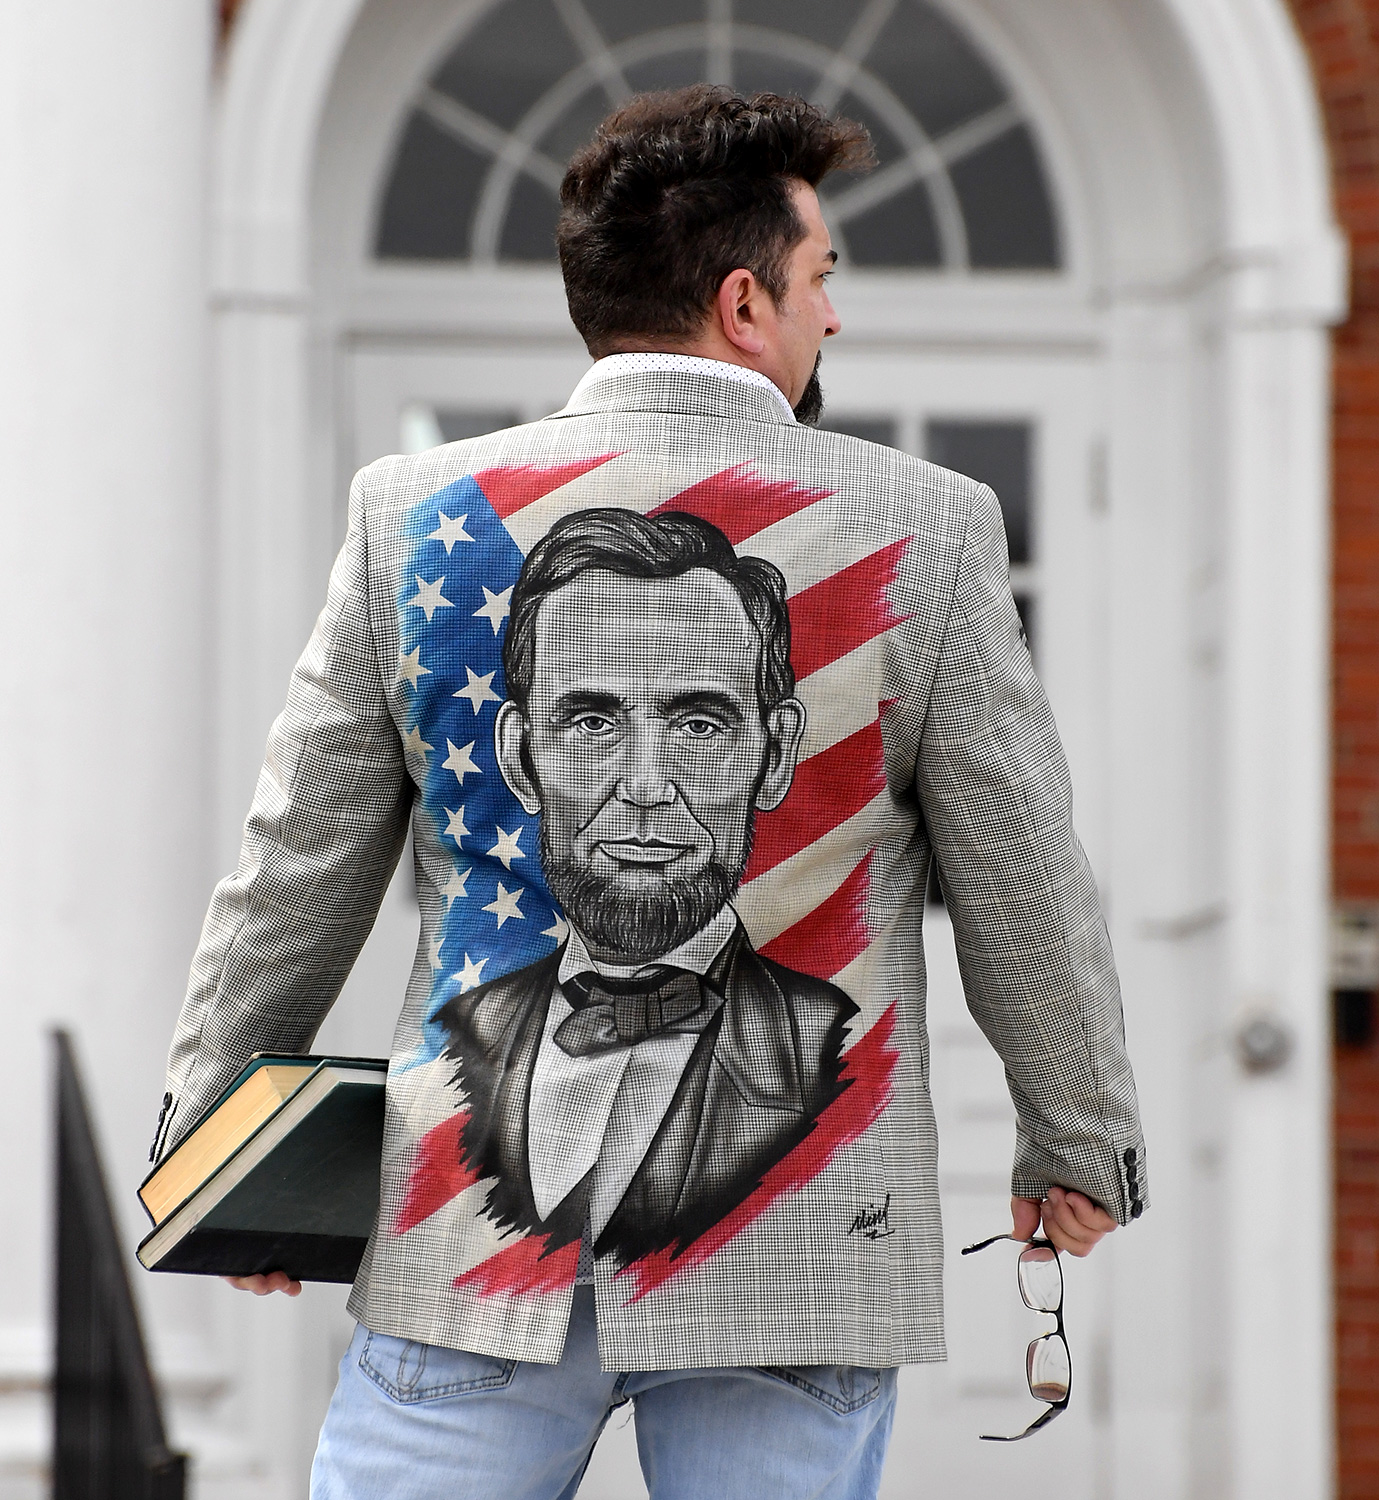 """Abe Lincoln"" by Richard Mink @jackedupairbrush"